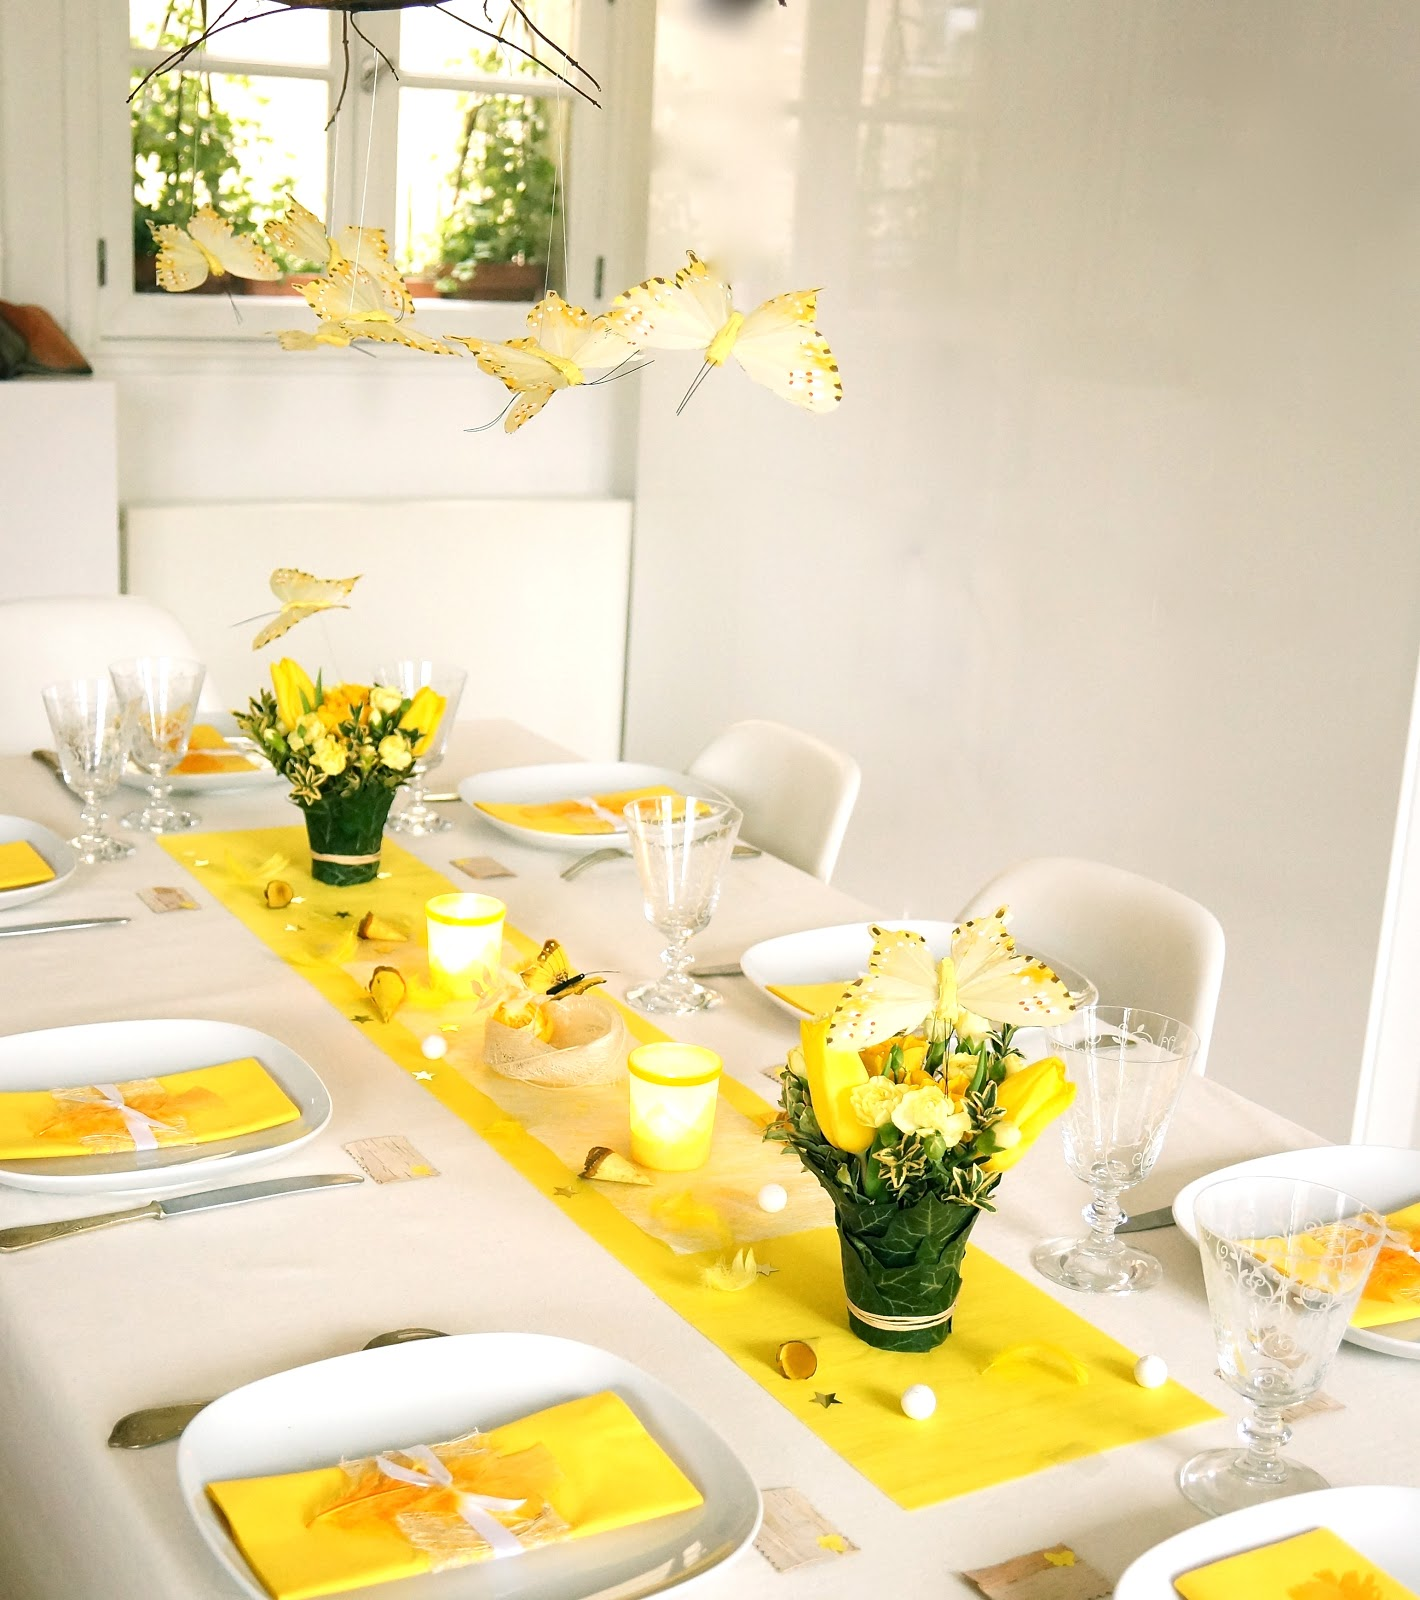 ma boutique d co table d coration de table jaune printemps the table. Black Bedroom Furniture Sets. Home Design Ideas